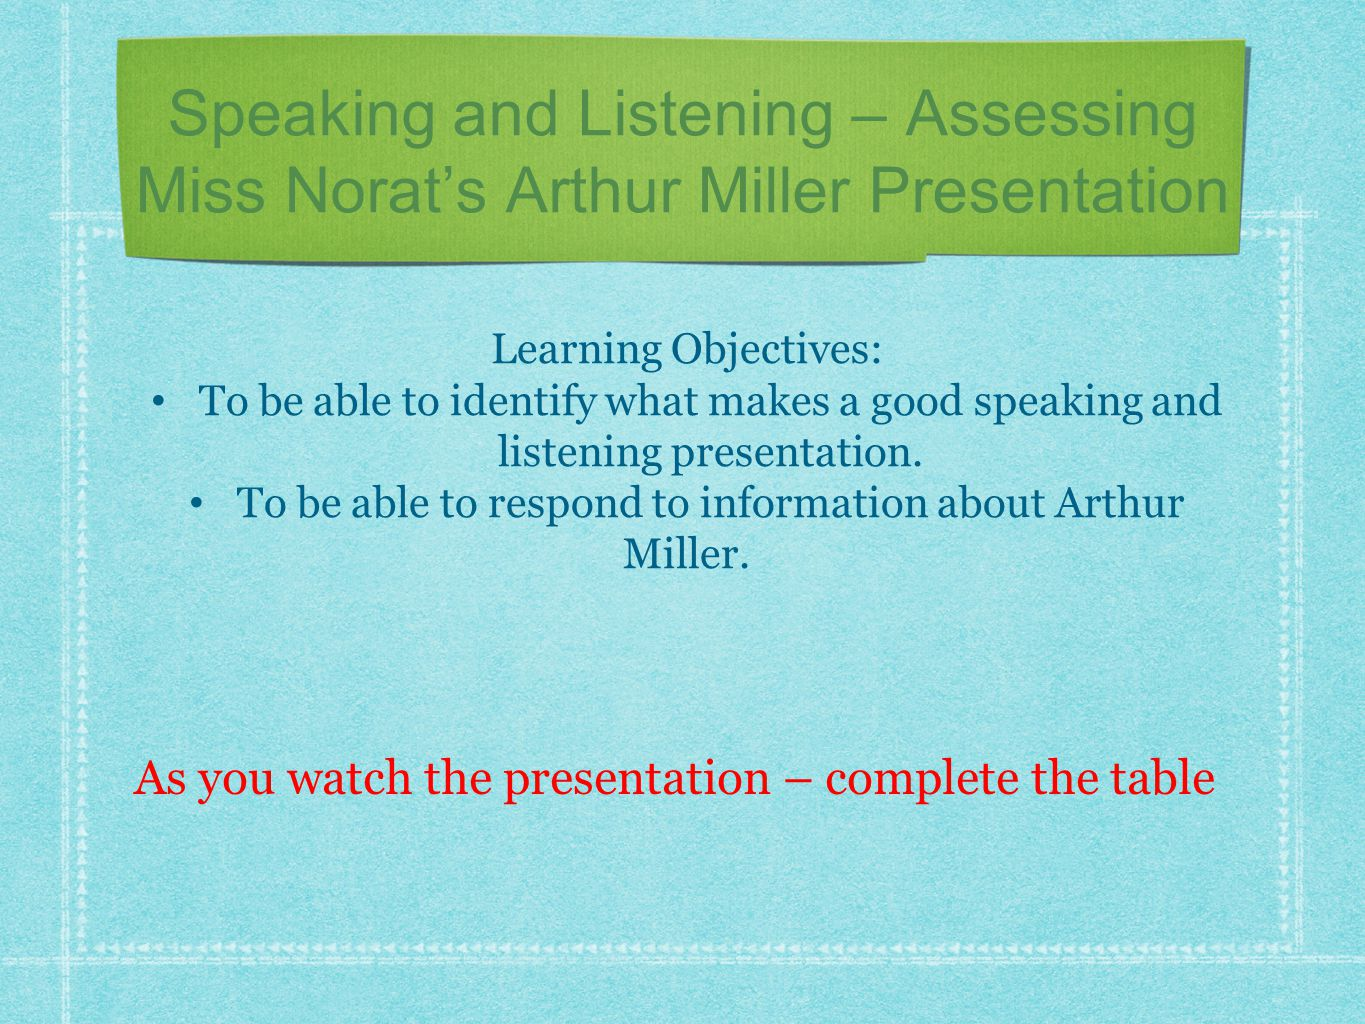 Speaking and Listening – Assessing Miss Norat's Arthur Miller Presentation Learning Objectives: To be able to identify what makes a good speaking and listening presentation.